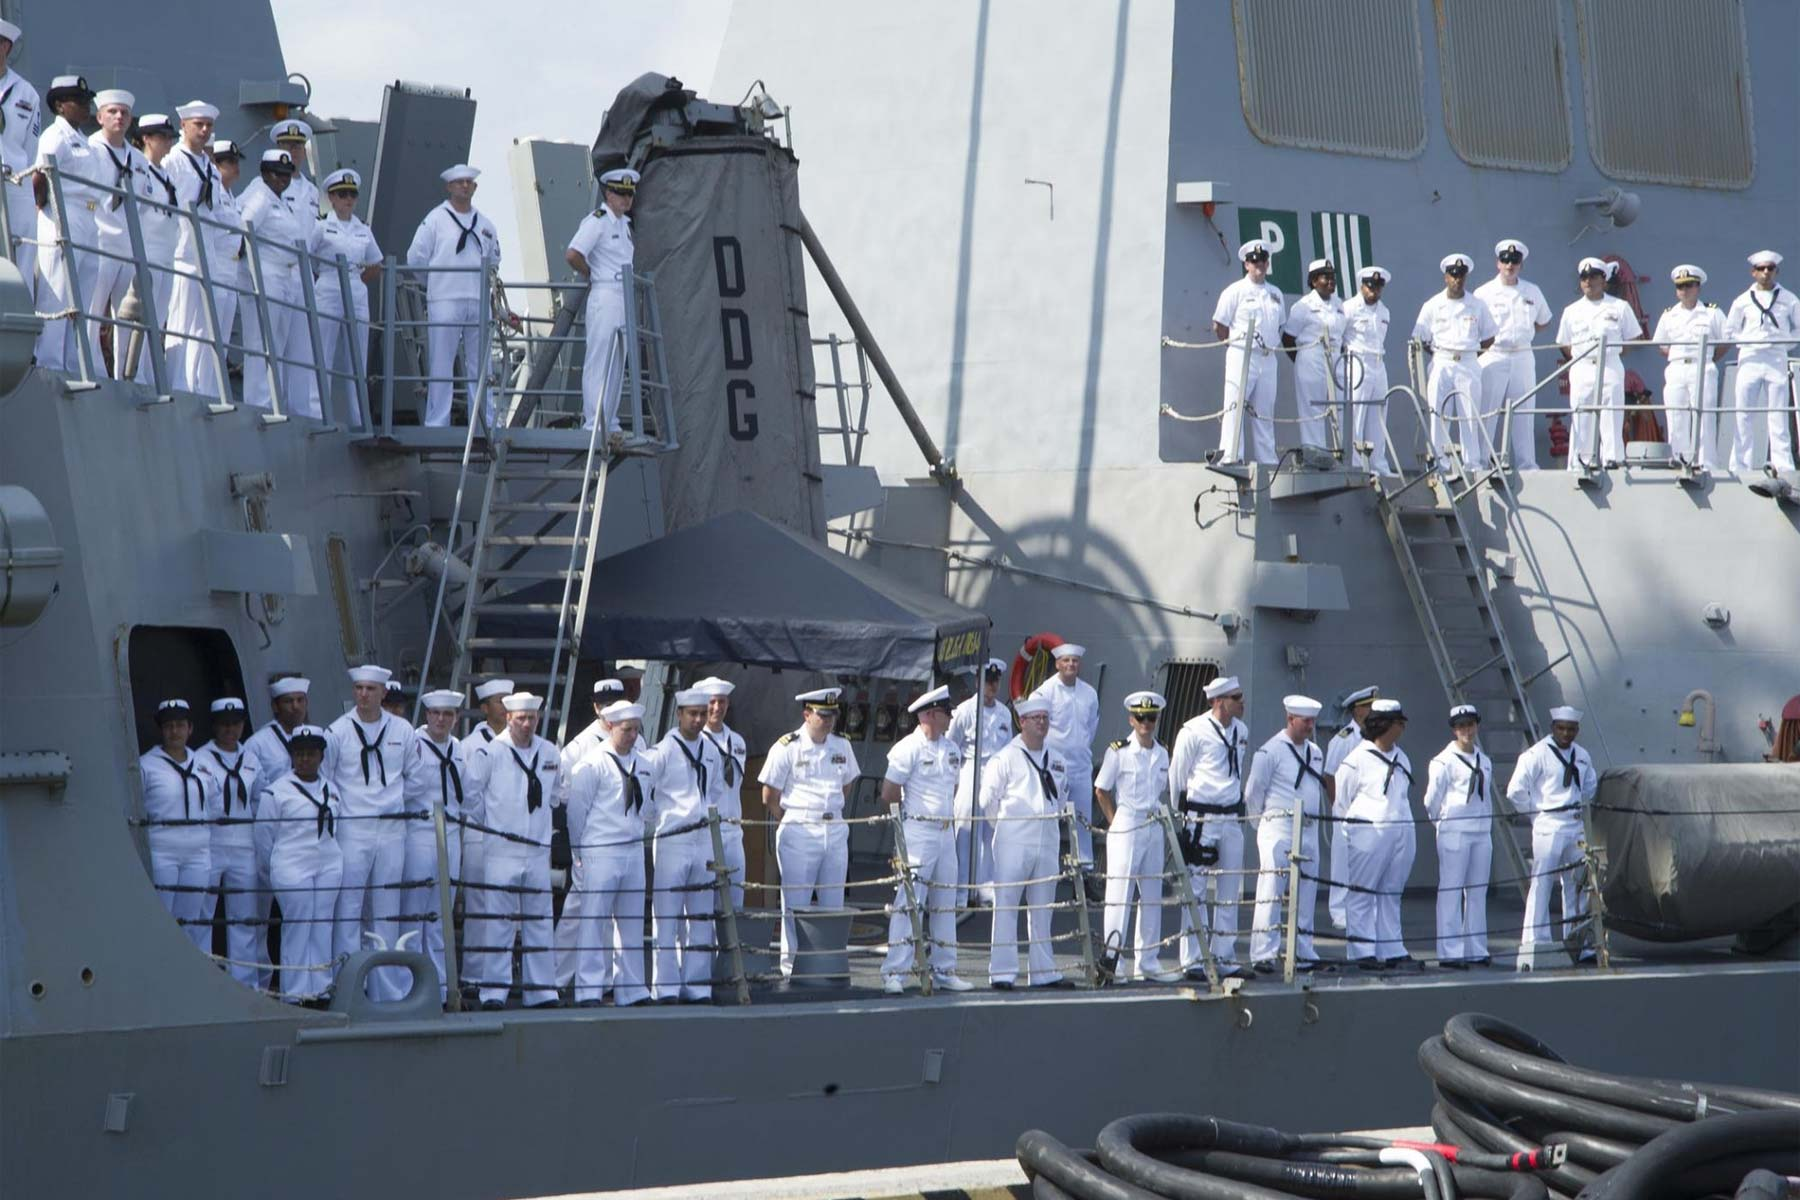 Loans Without A Job >> Navy to Separate Sailors Who Share Nude Photos Without Permission | Military.com